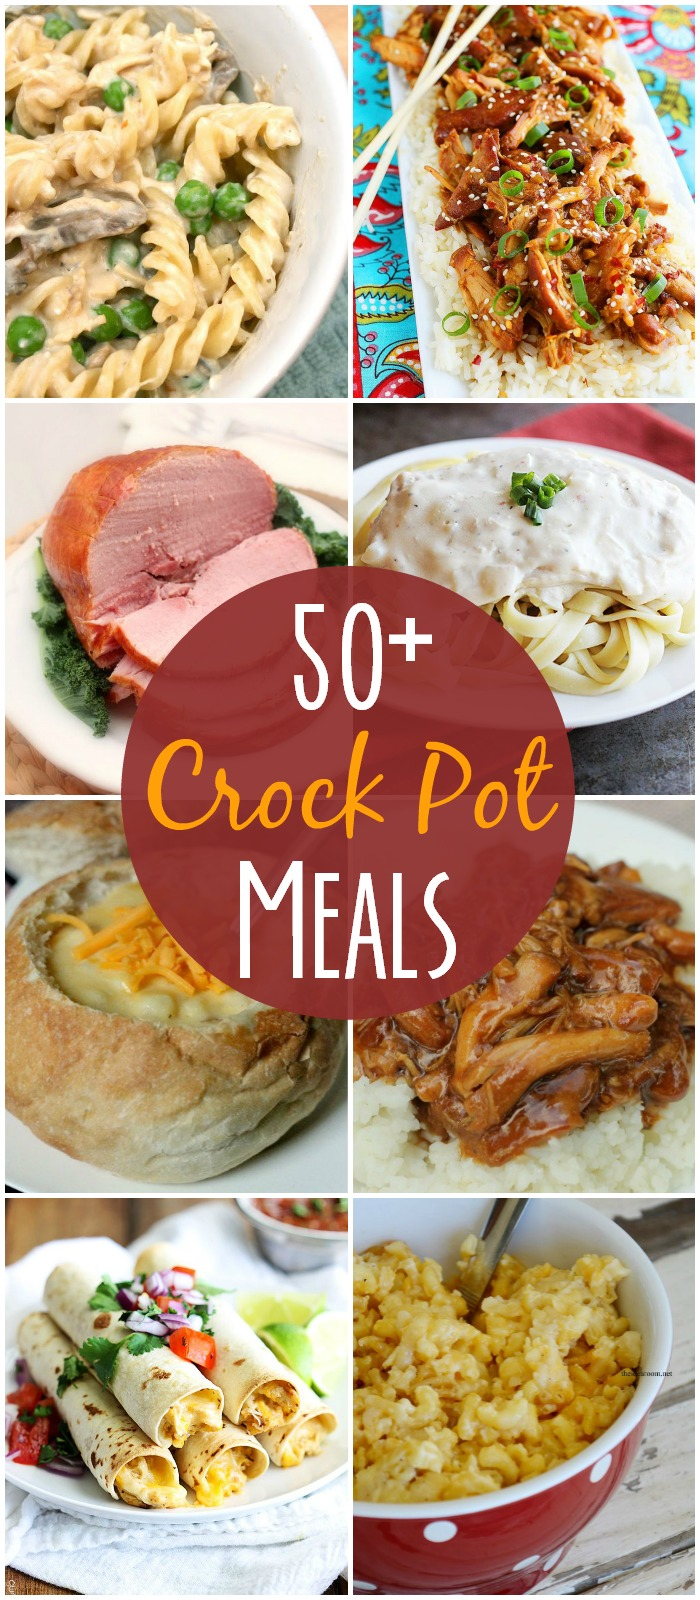 50+ crock pot meals by Lil' Luna